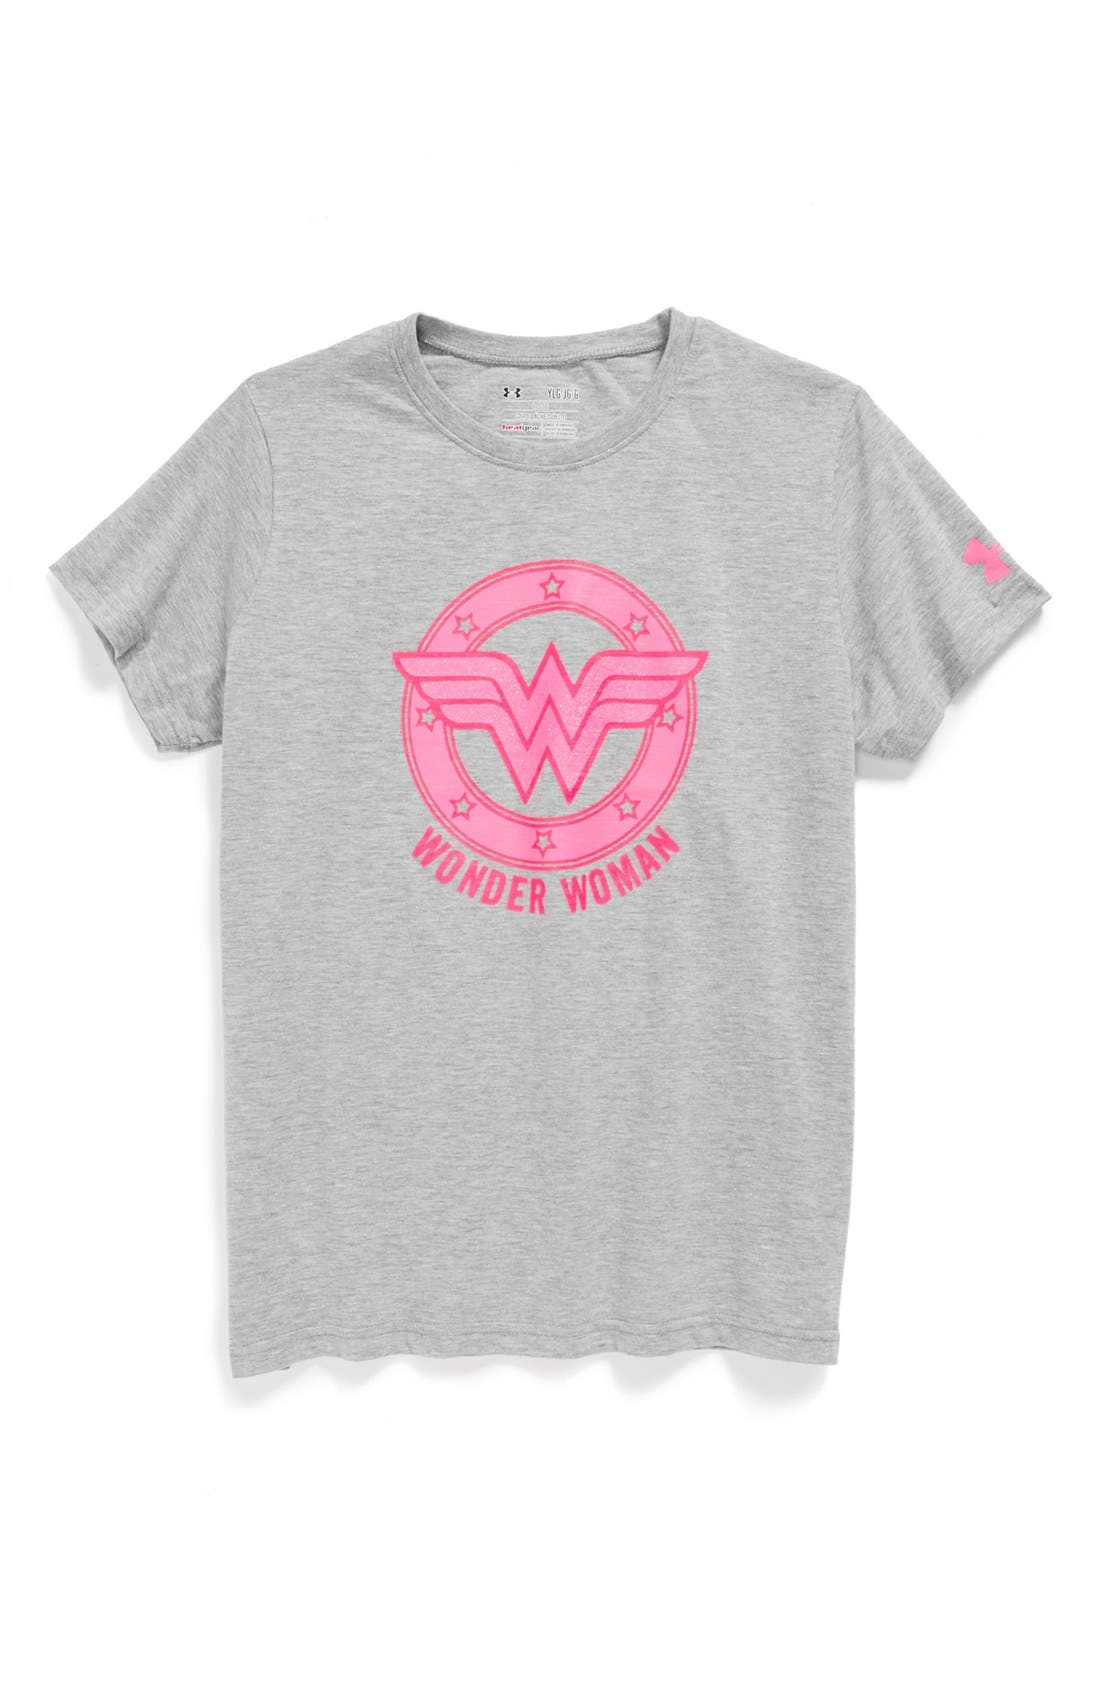 Main Image - Under Armour 'Wonder Woman' Charged Cotton® Tee (Little Girls & Big Girls)